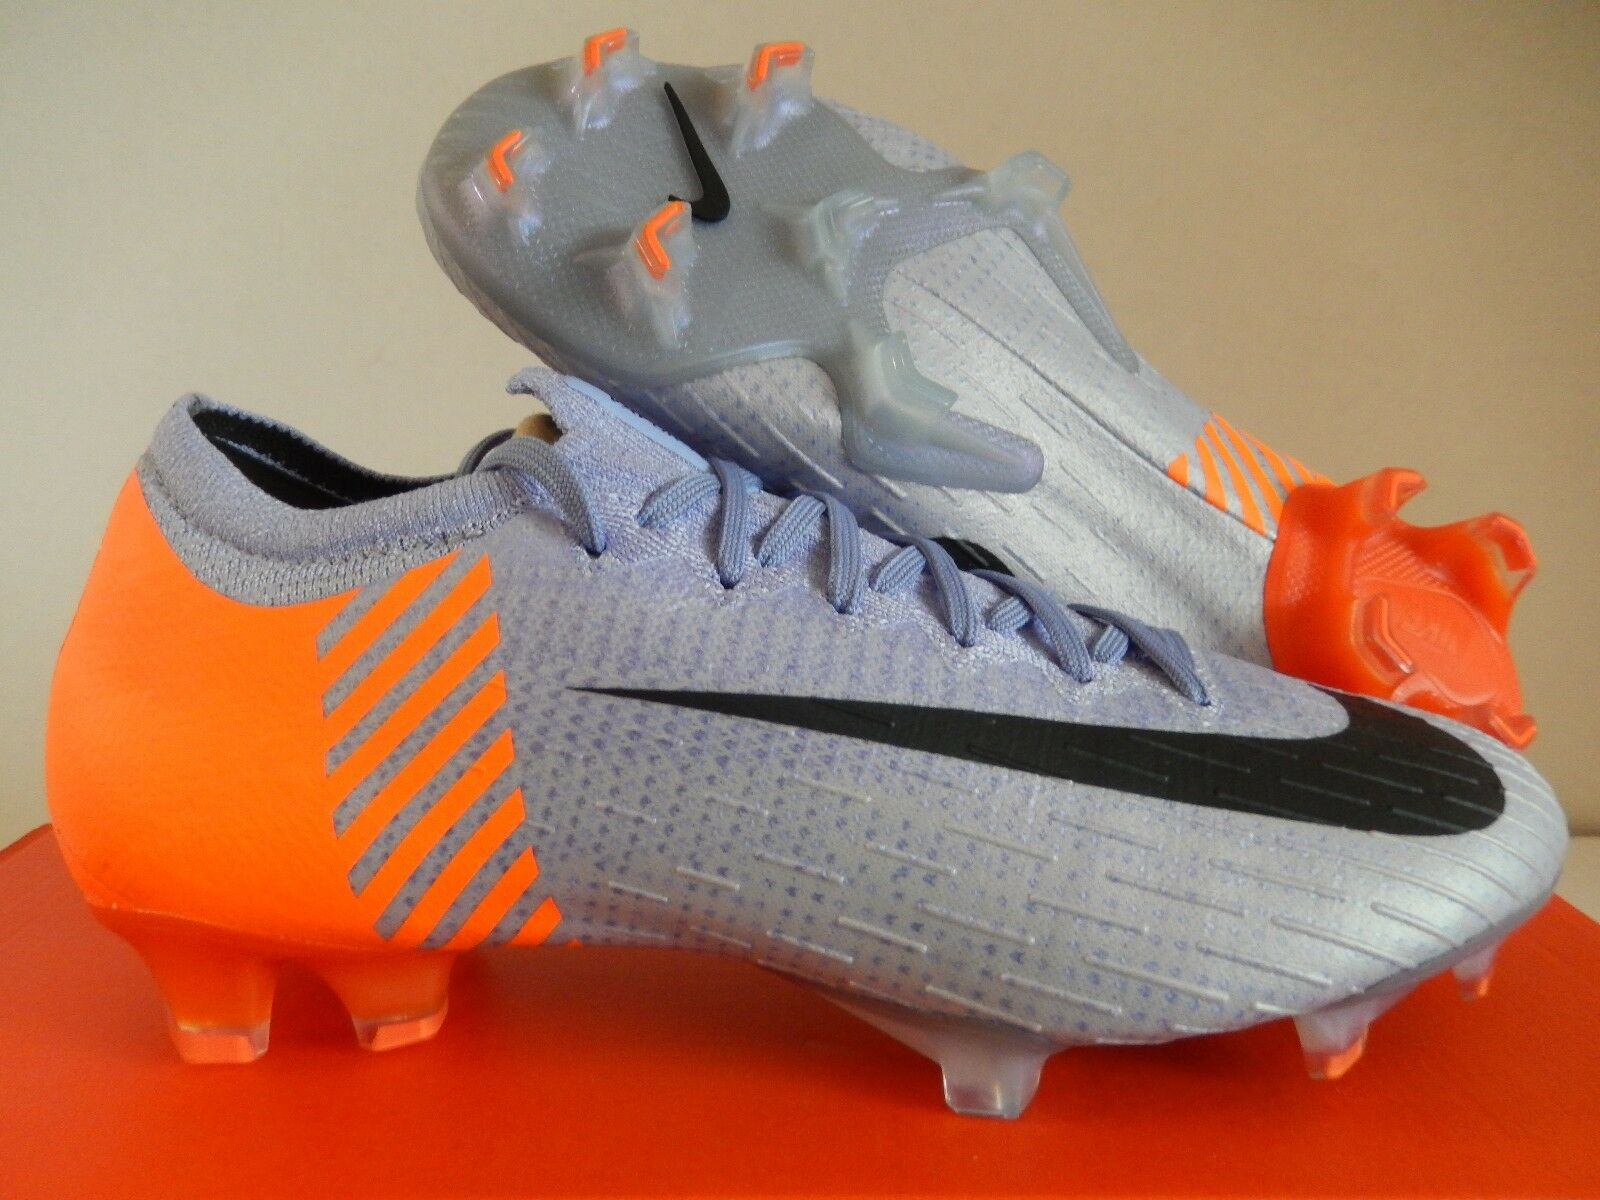 nike mercurial vapor sz 12 elite 360 fg id purple-orange-black sz vapor 6,5 [aj6735-994] ad8c42